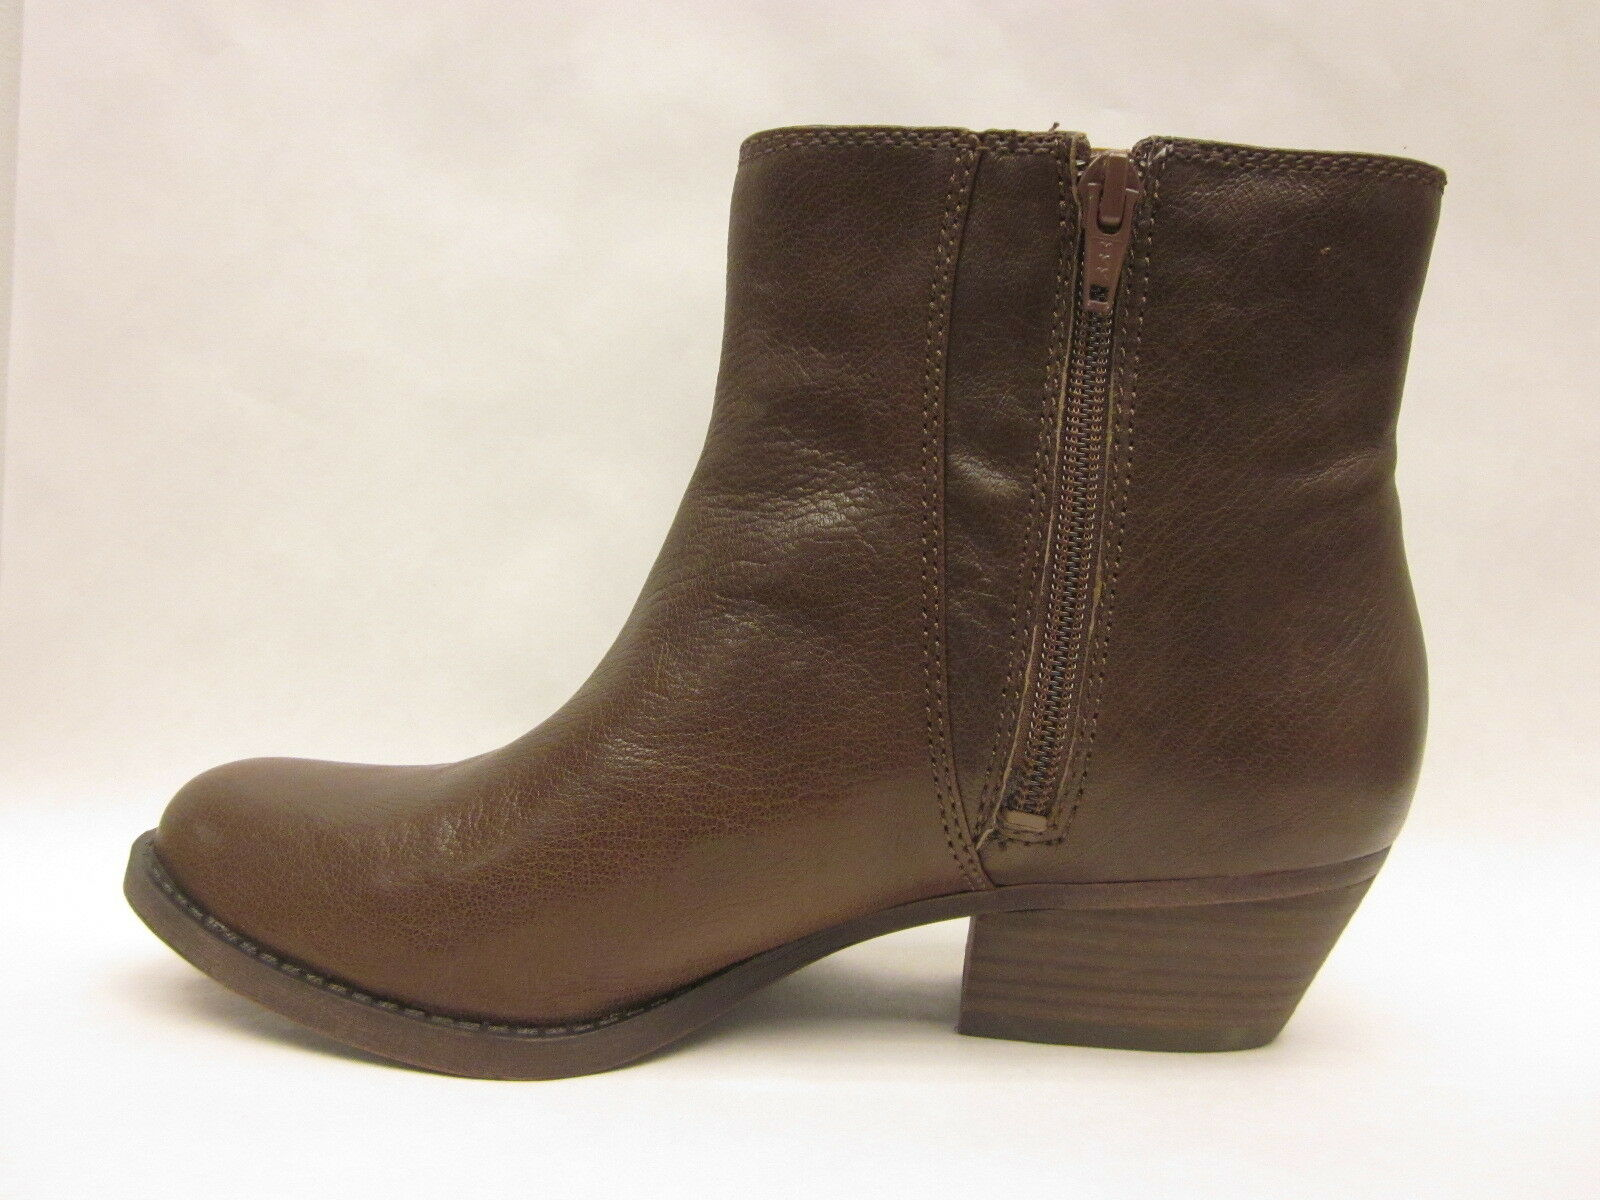 Nine West Sloane Brown Ankle Ankle Ankle Boots - size 6 ab9004